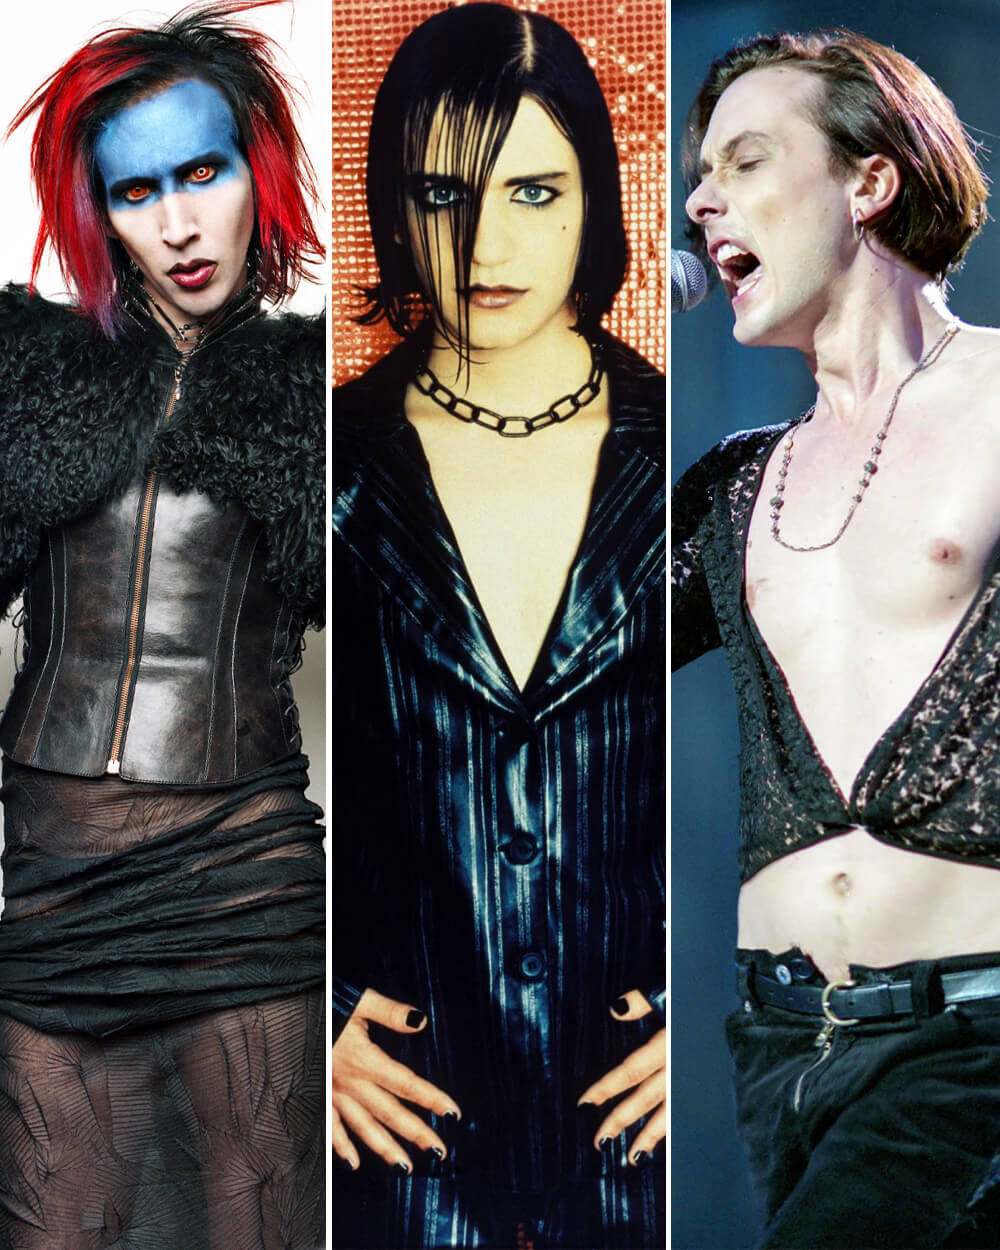 Brett Anderson of the British band Suede, Marilyn Manson and the band Placebo Androgynous Fashion